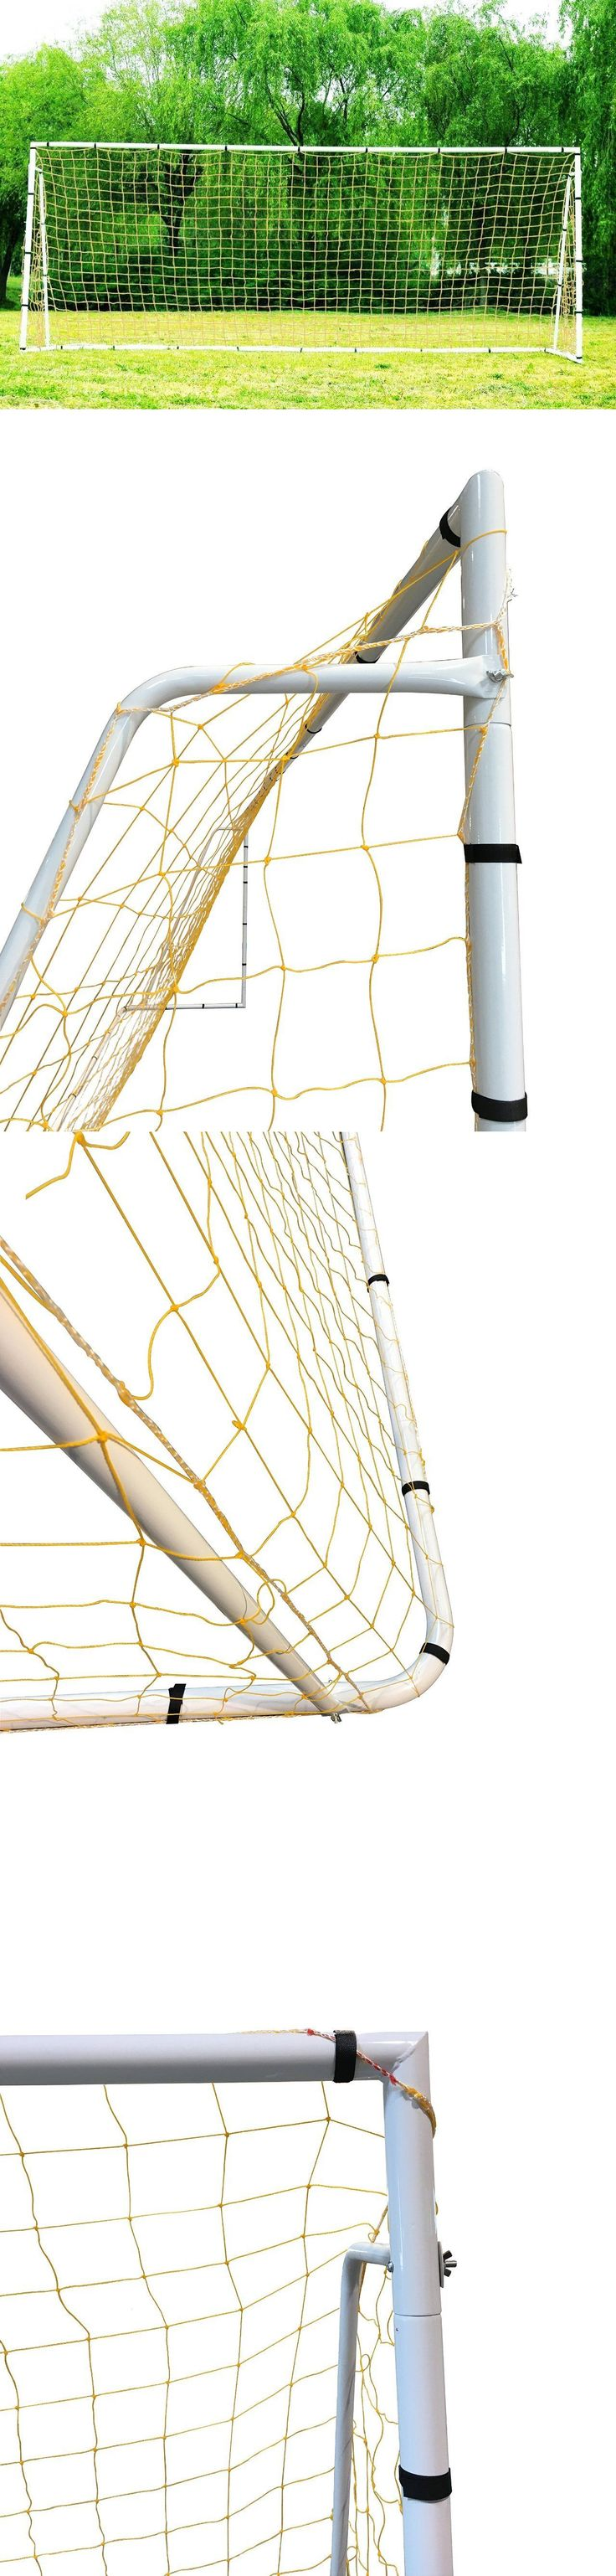 Goals and Nets 159180: 24 X 8 Official Mls Fifa League Size Soccer Goal. Heavy Duty Frame W Two Nets. -> BUY IT NOW ONLY: $249.99 on eBay!